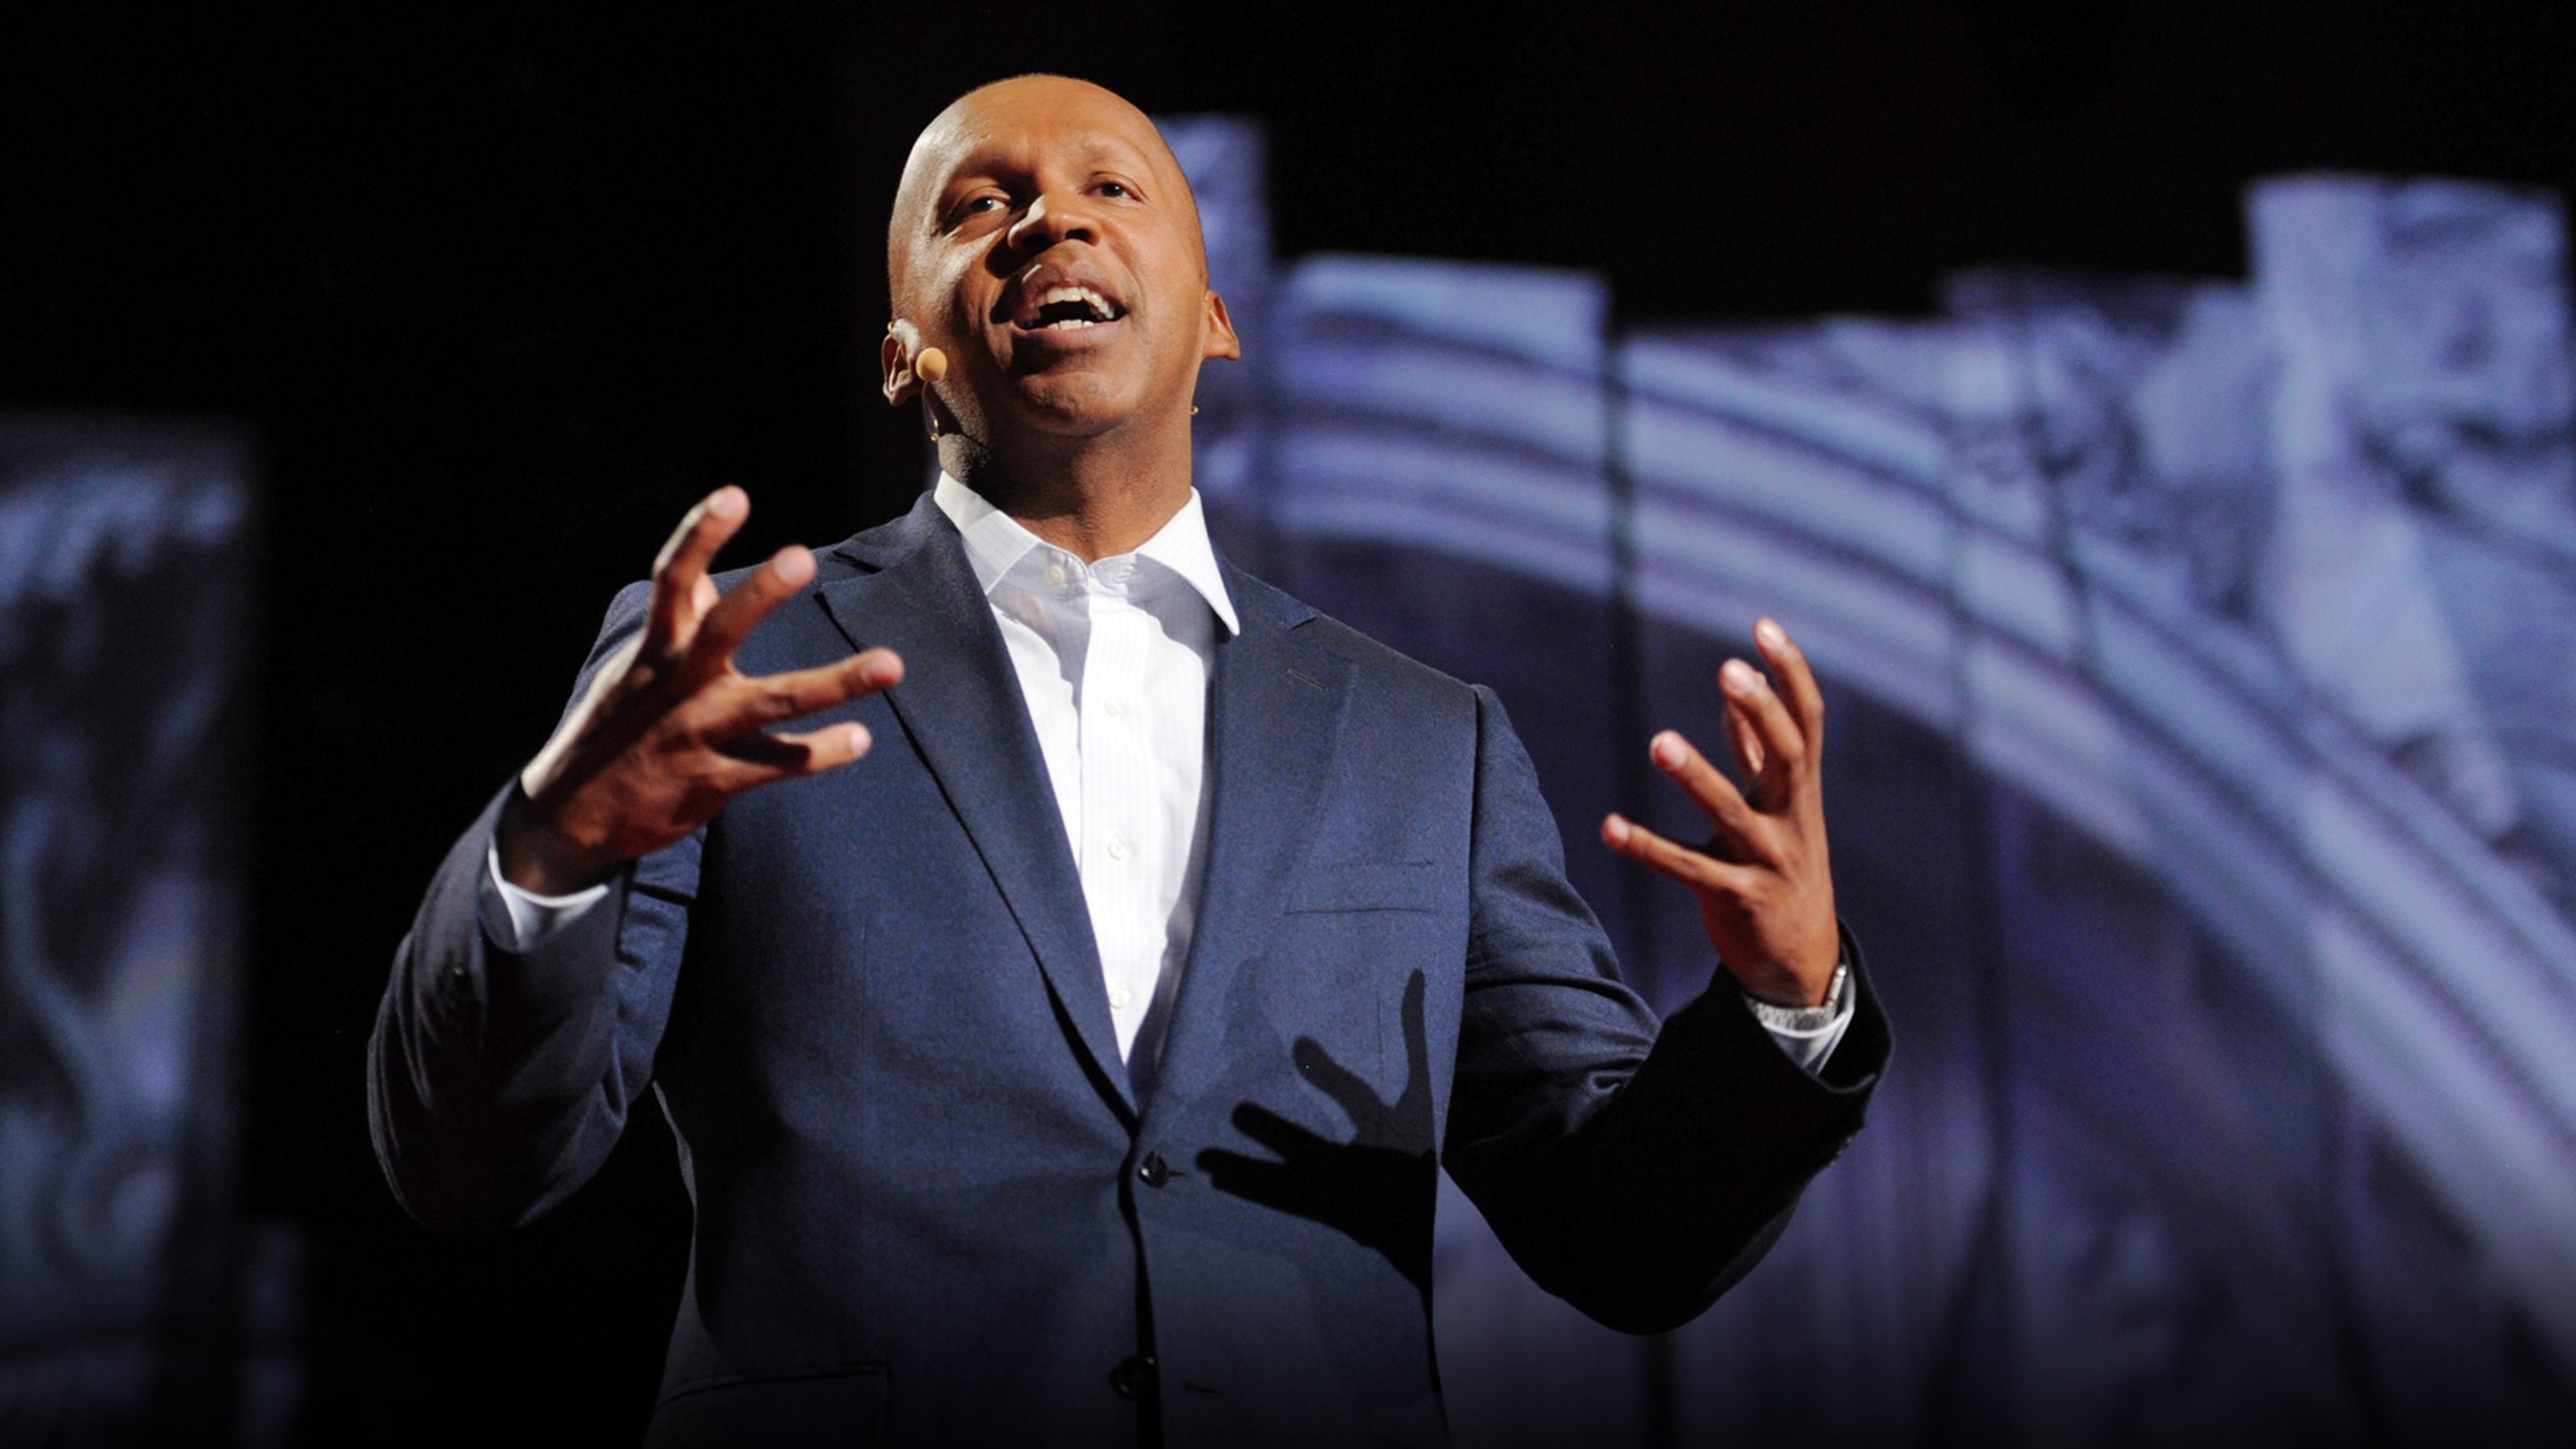 Bryan Stevenson: We need to talk about an injustice   TED Talk